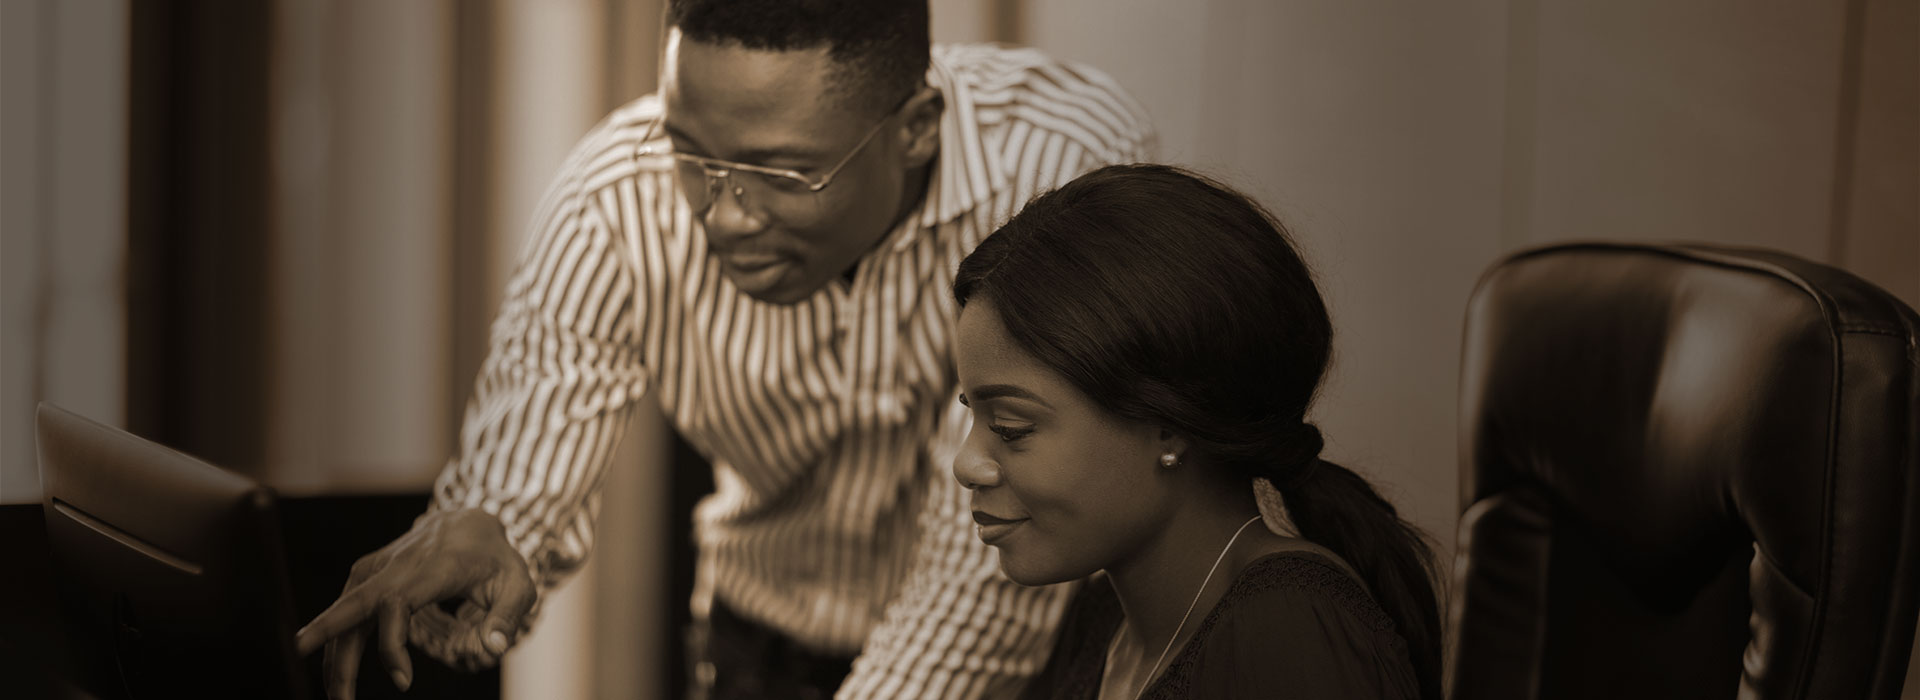 Africa Initiative for Governance (AIG) 2020/21 Scholarships (Fully Funded)